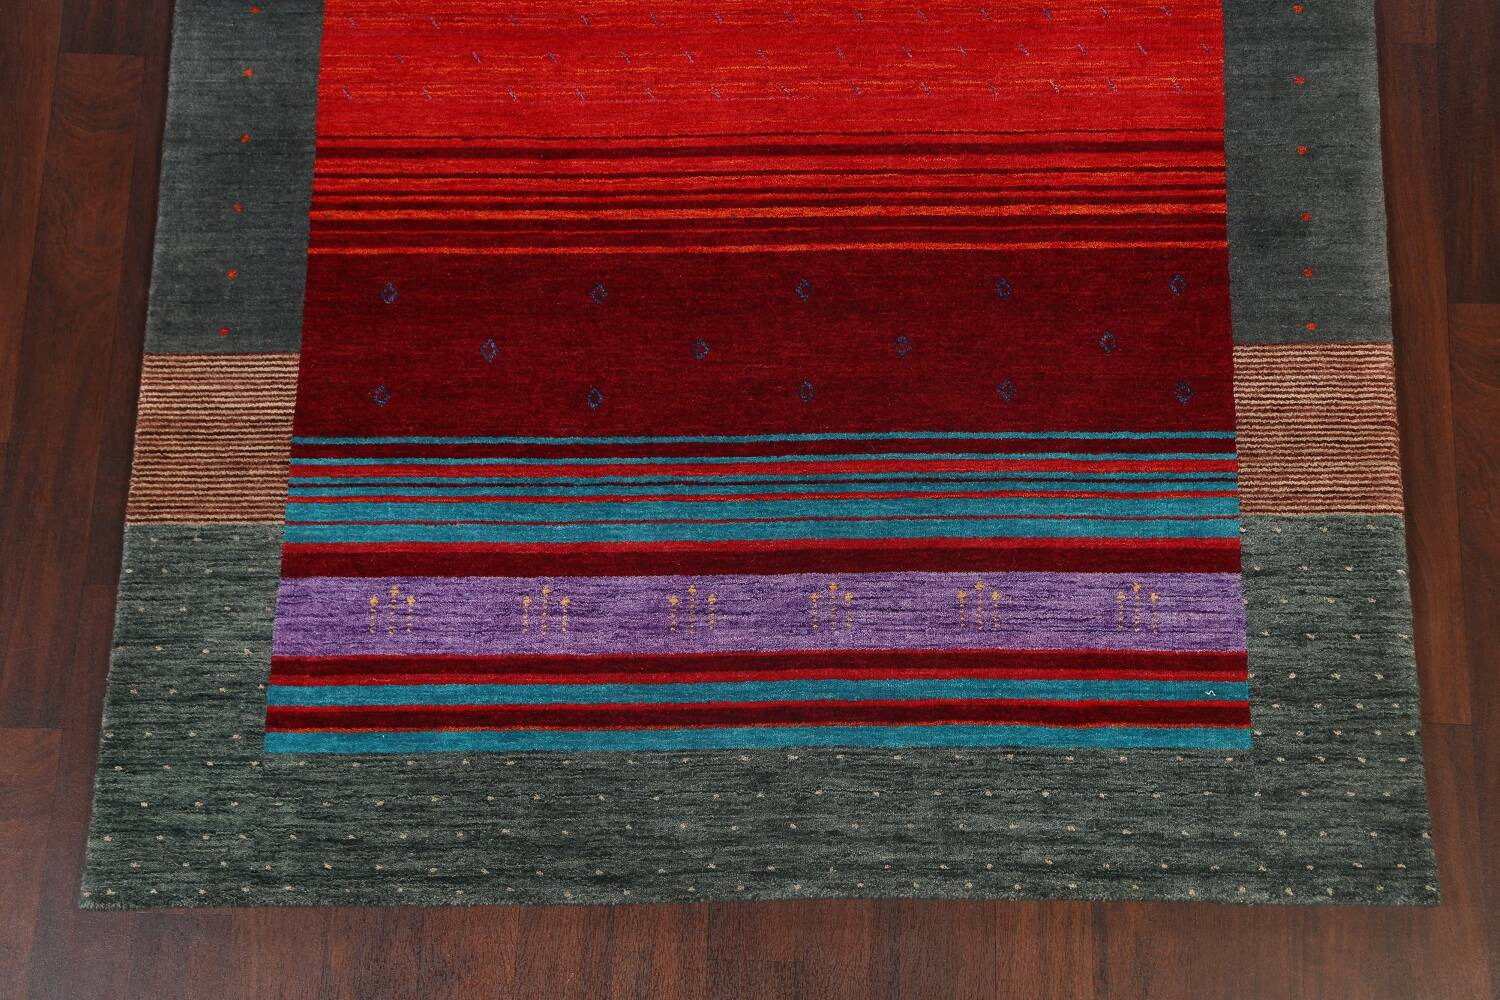 Abstract Contemporary Gabbeh Oriental Area Rug 6x8 image 8